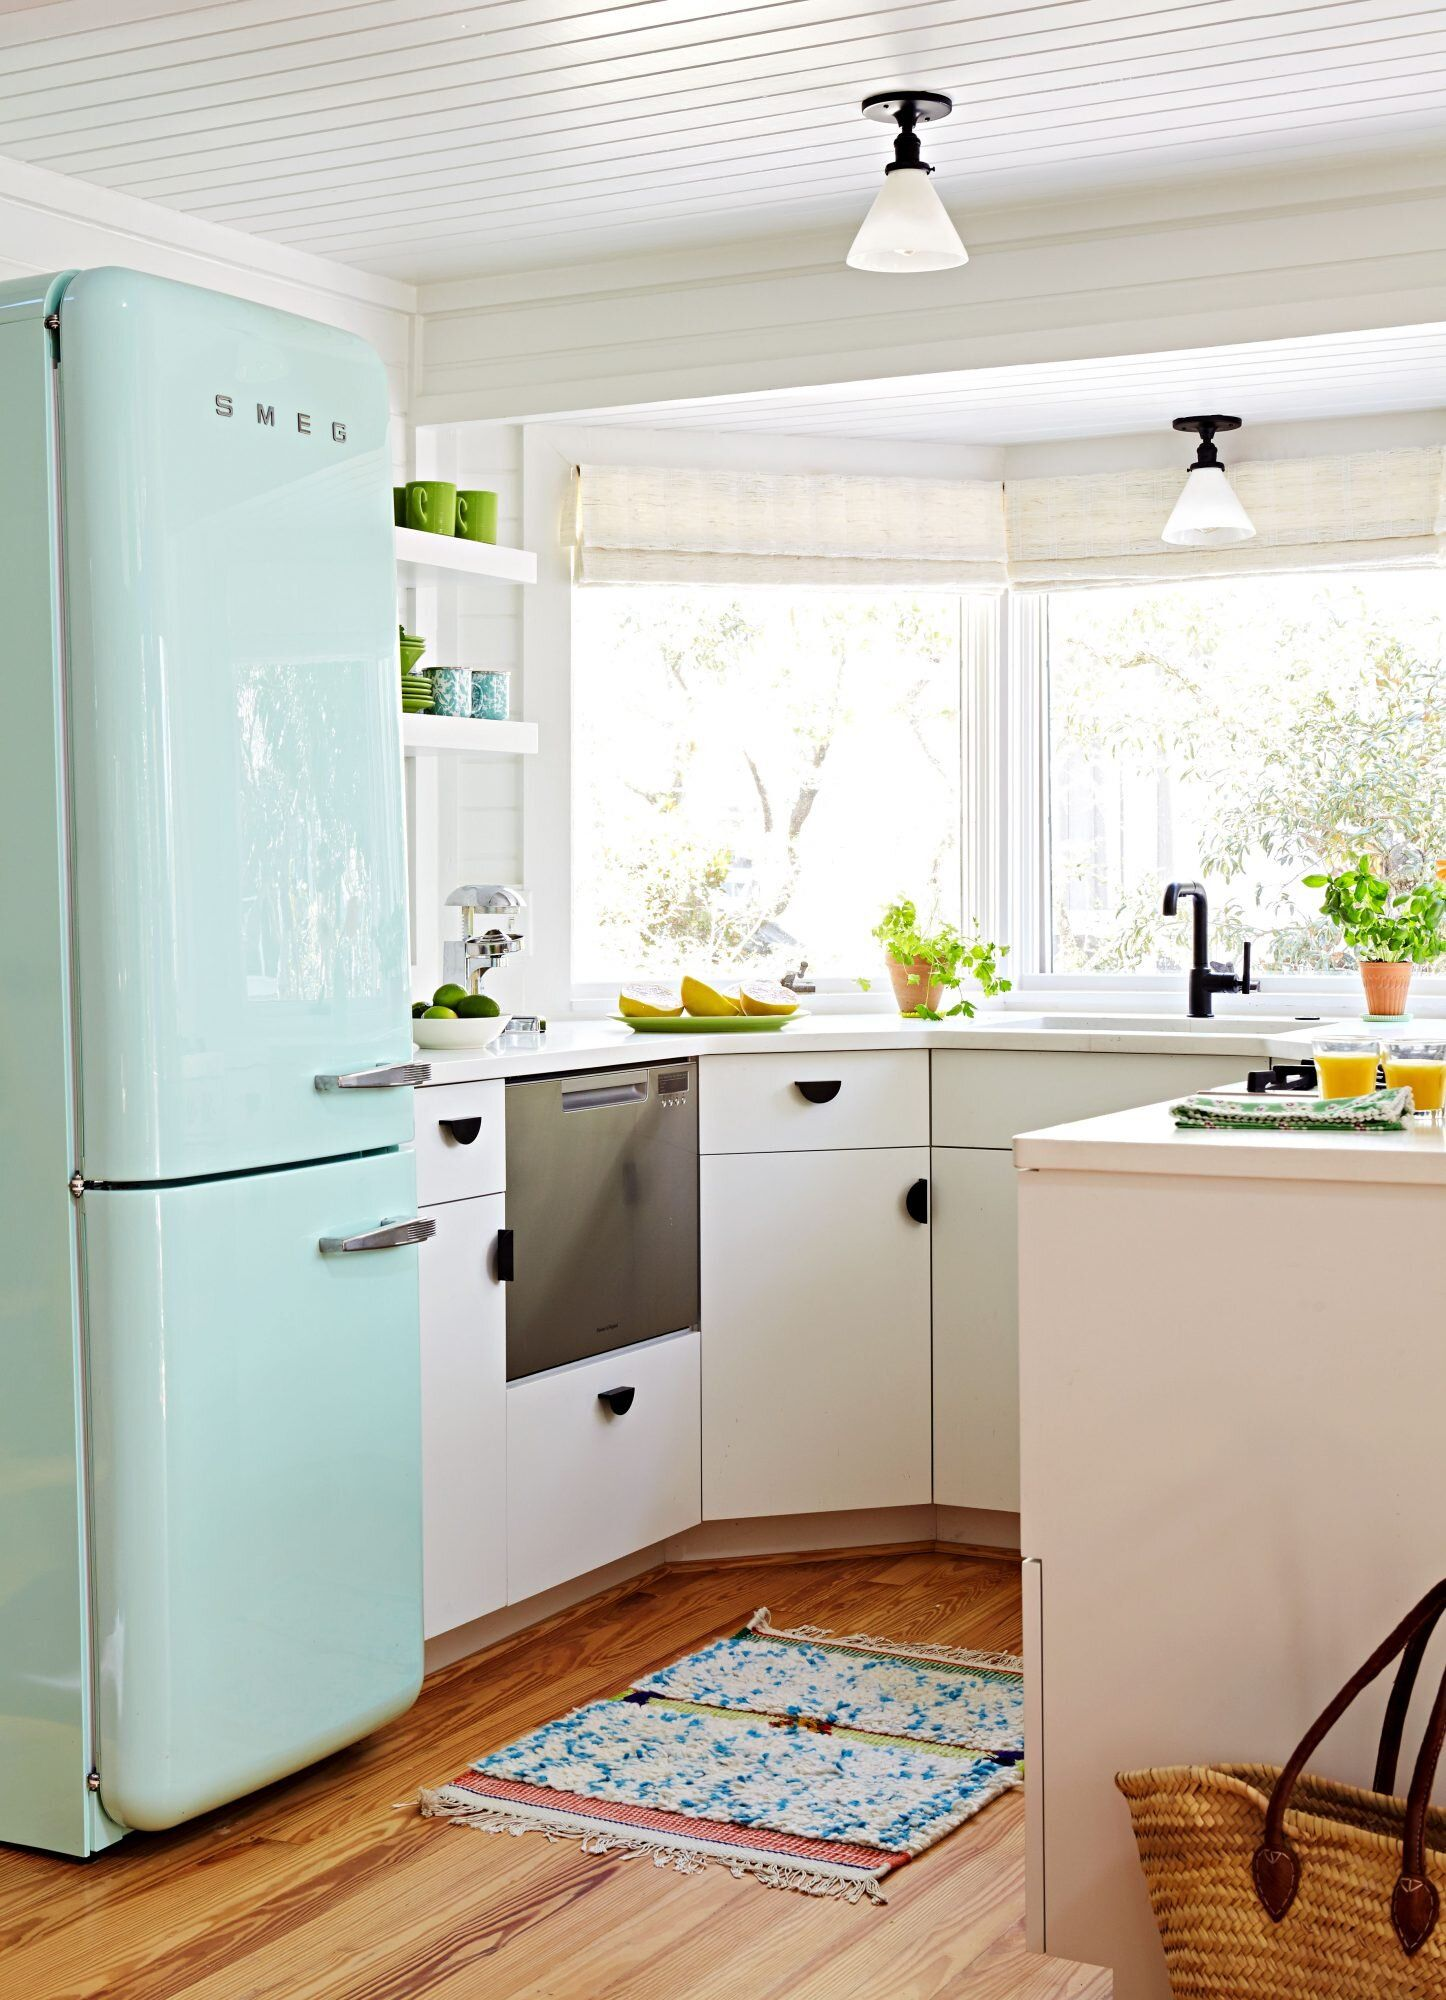 This 600 Square Foot Florida Beach Cottage Is A Tiny Slice Of Paradise Small Cottage Kitchen Cottage Kitchens Kitchen Design